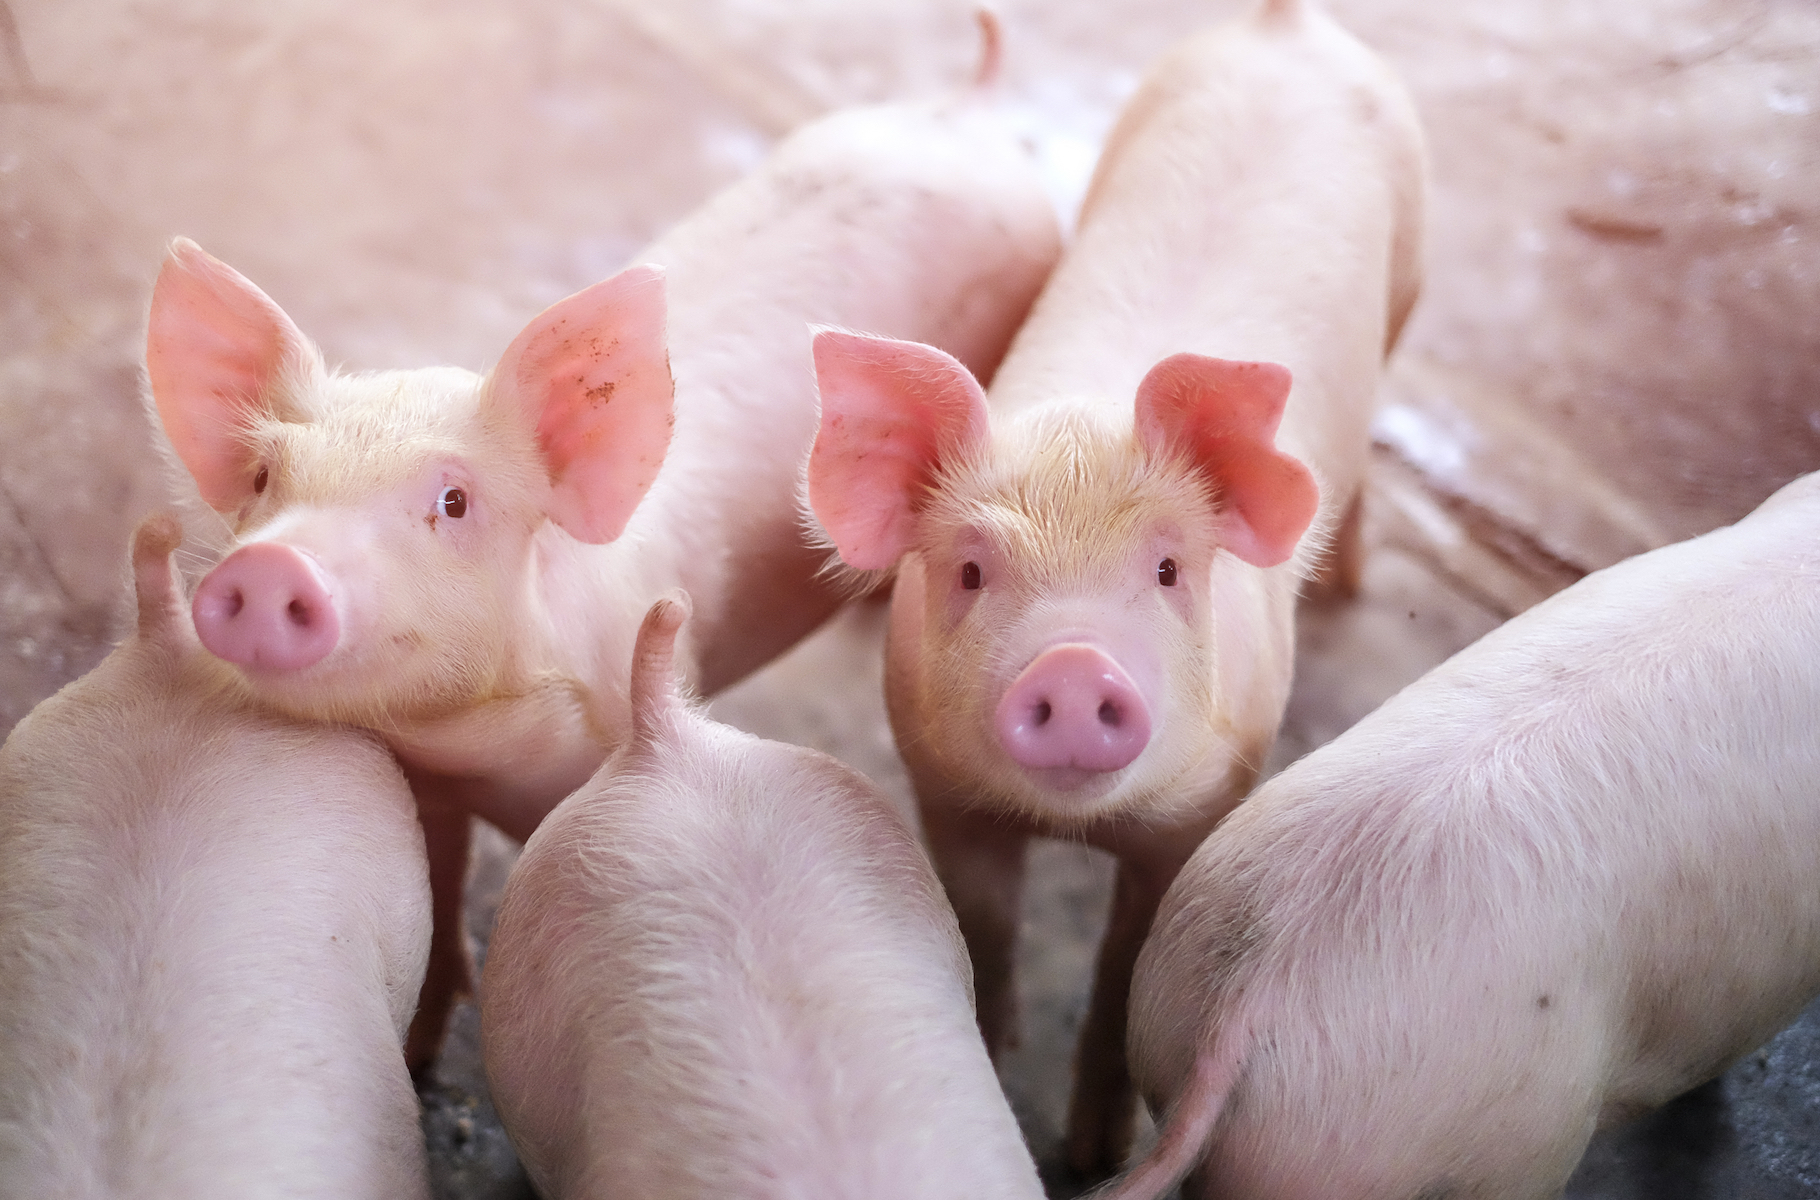 The results of a new study reveal that pigs have a better visual-based memory and intelligence than previous studies suggest.